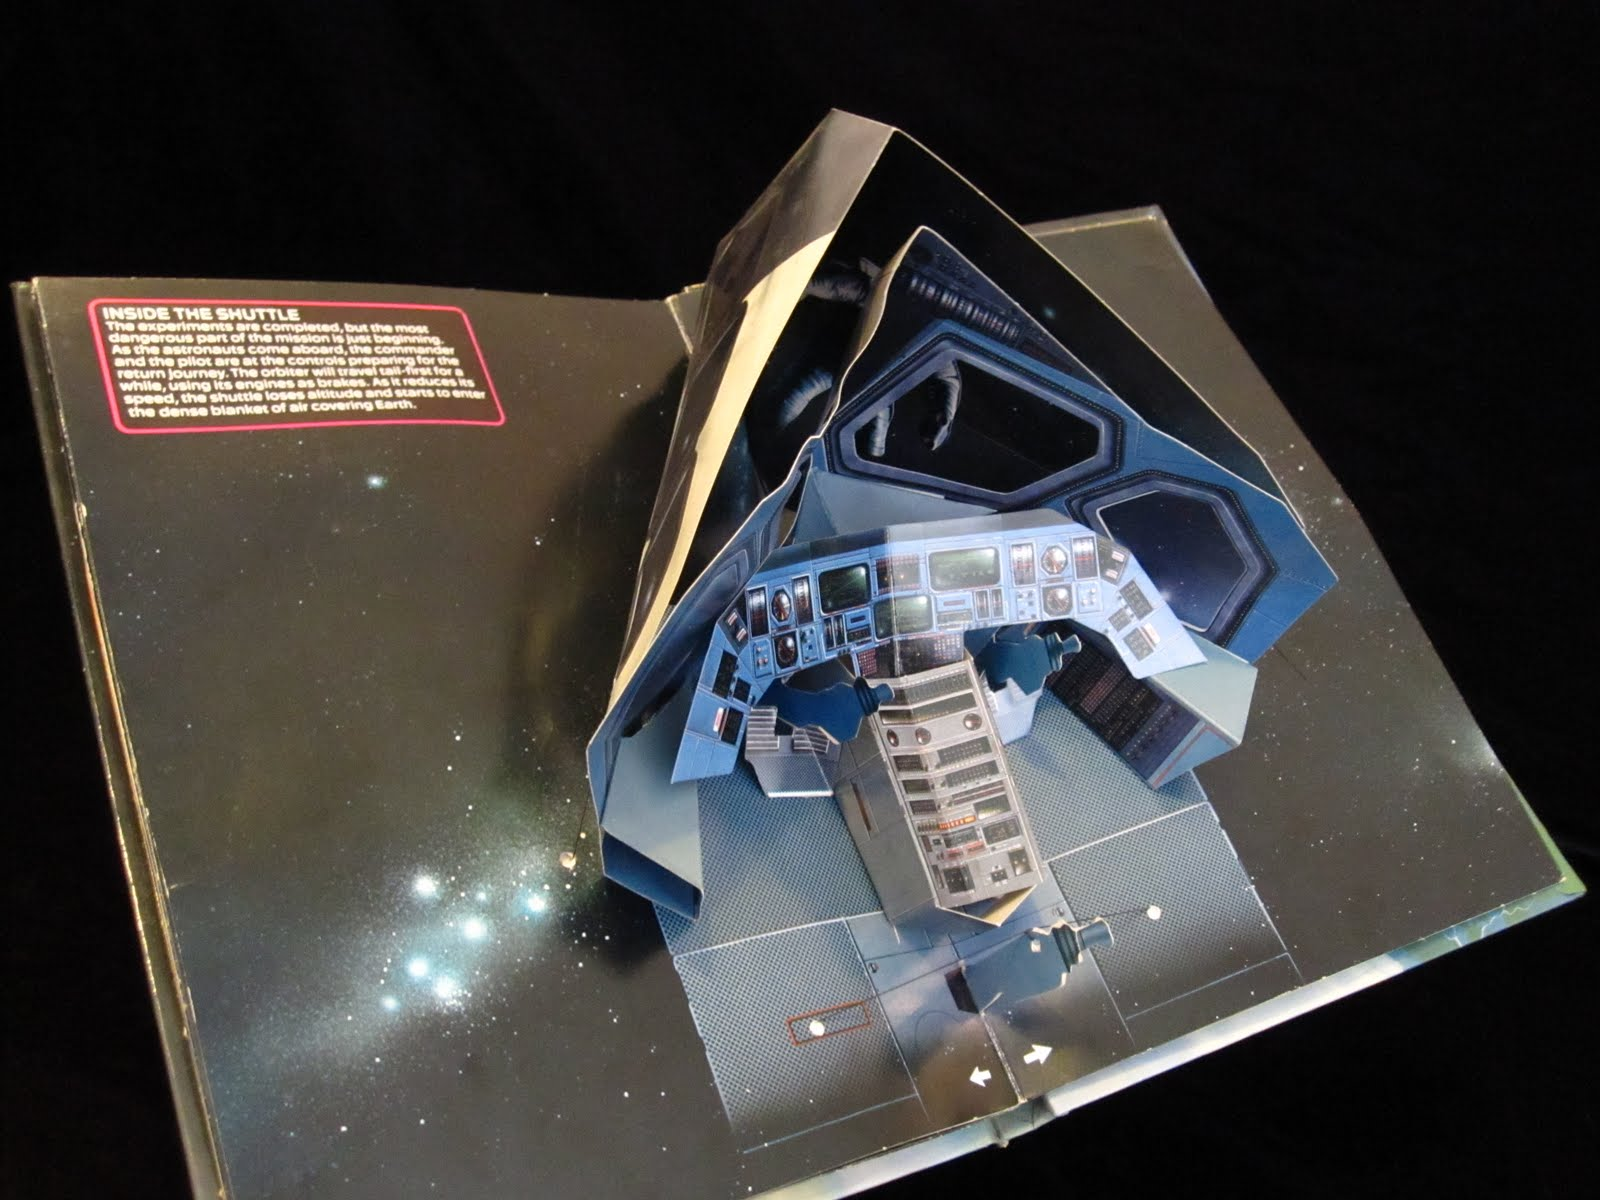 space shuttle book - photo #33